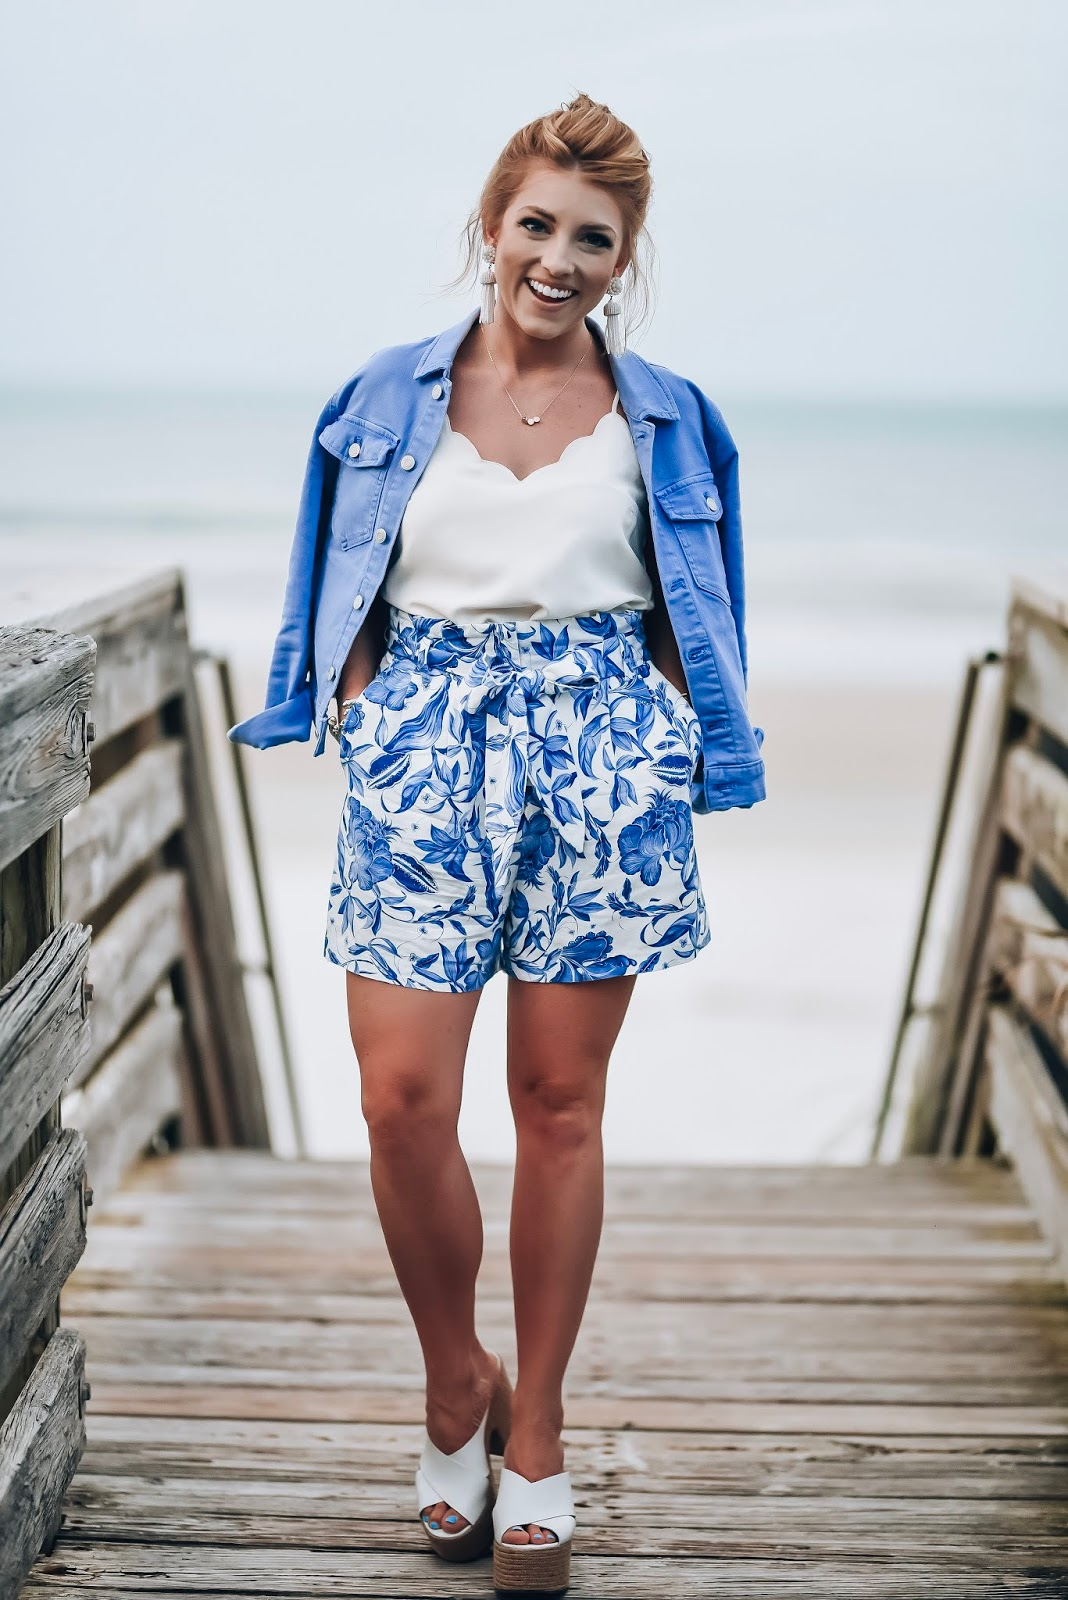 Blue Hues: Under $50 Blue Denim Jacket + Under $20 Blue & White Paper Waist Shorts  - Something Delightful Blog - Style for Women and Kids